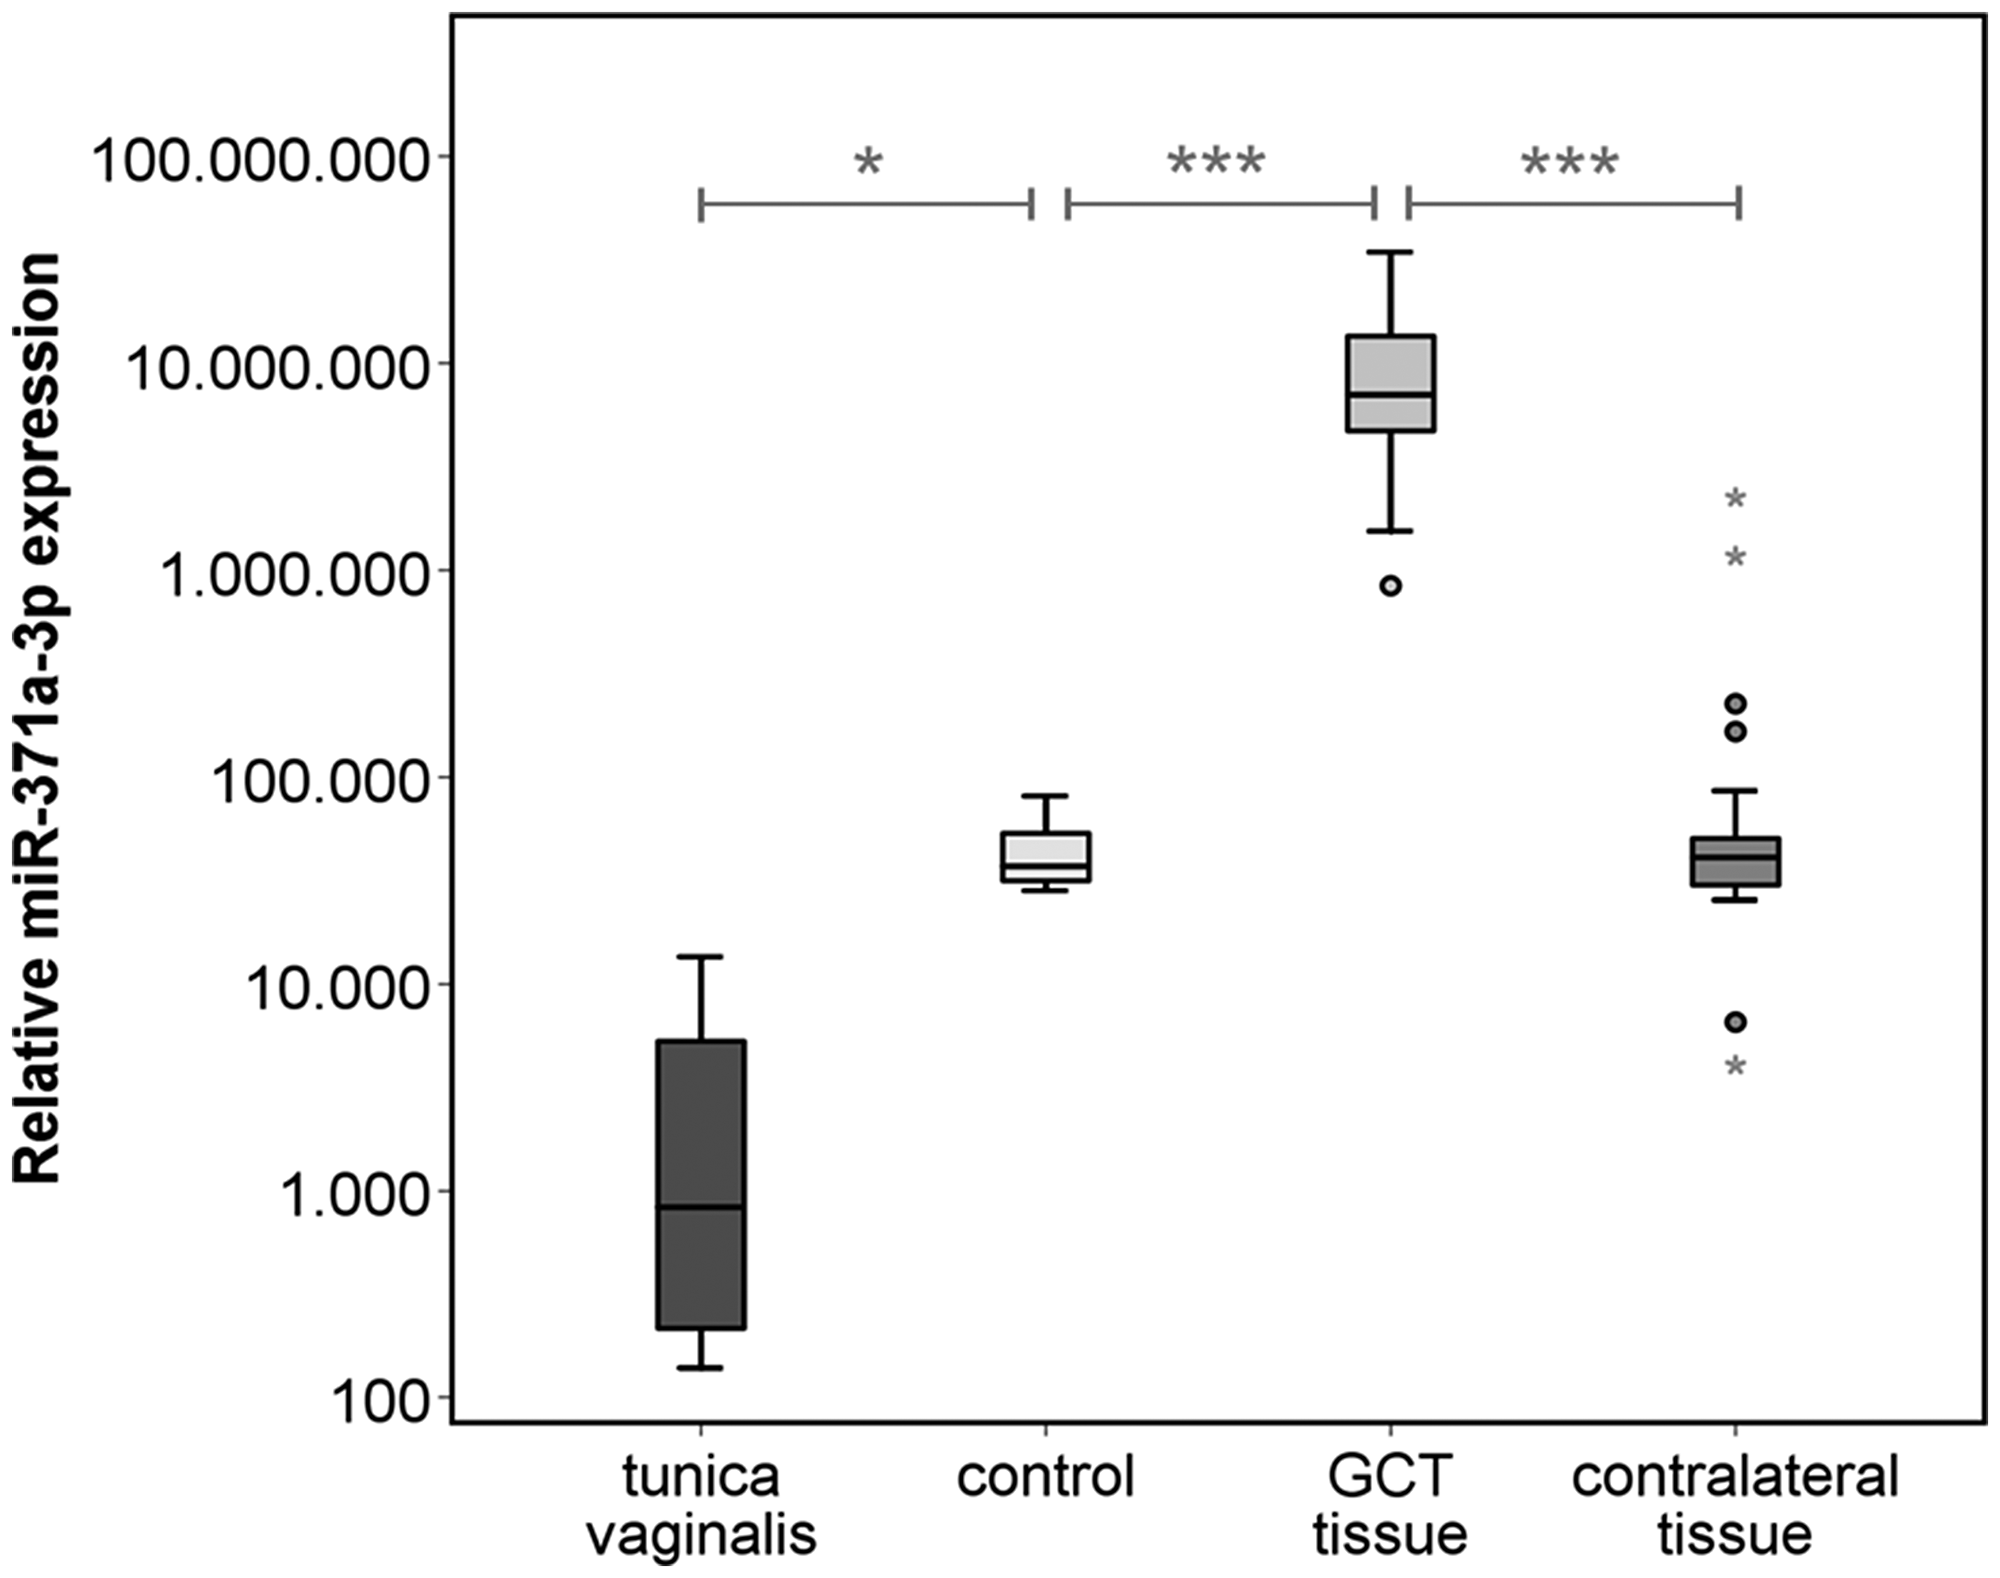 Relative miR-371a-3p expression in GCT tissue (n = 38) and corresponding contralateral testicular tissue (n = 38) of the same patients, healthy controls (n = 5) and non-testicular tissue samples of the tunica vaginalis (n = 4).